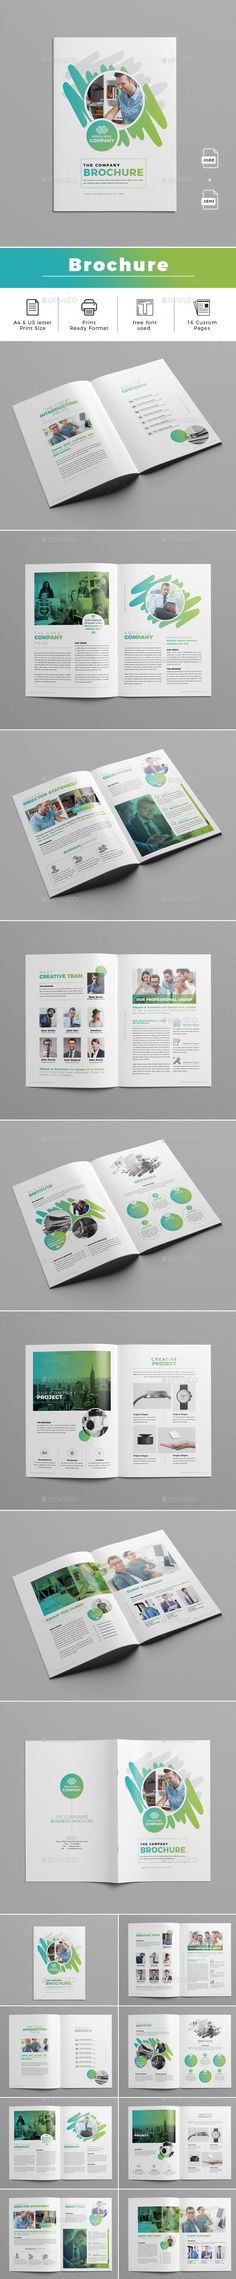 Brochure Template InDesign INDD - A4 & US Letter Size - 16 Custom Pages